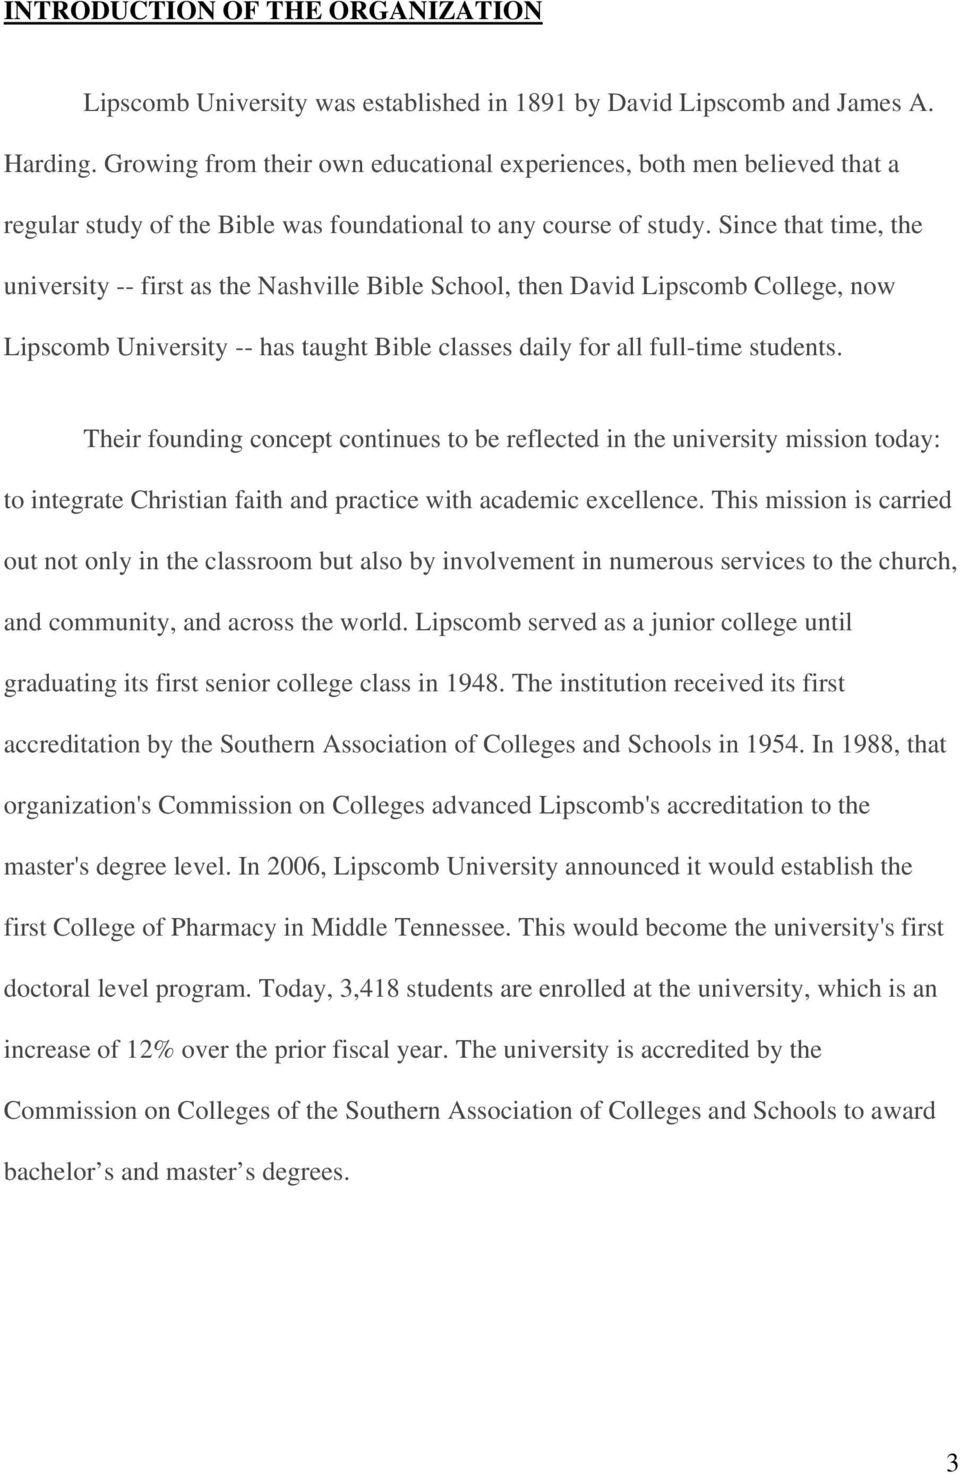 Since that time, the university -- first as the Nashville Bible School, then David Lipscomb College, now Lipscomb University -- has taught Bible classes daily for all full-time students.